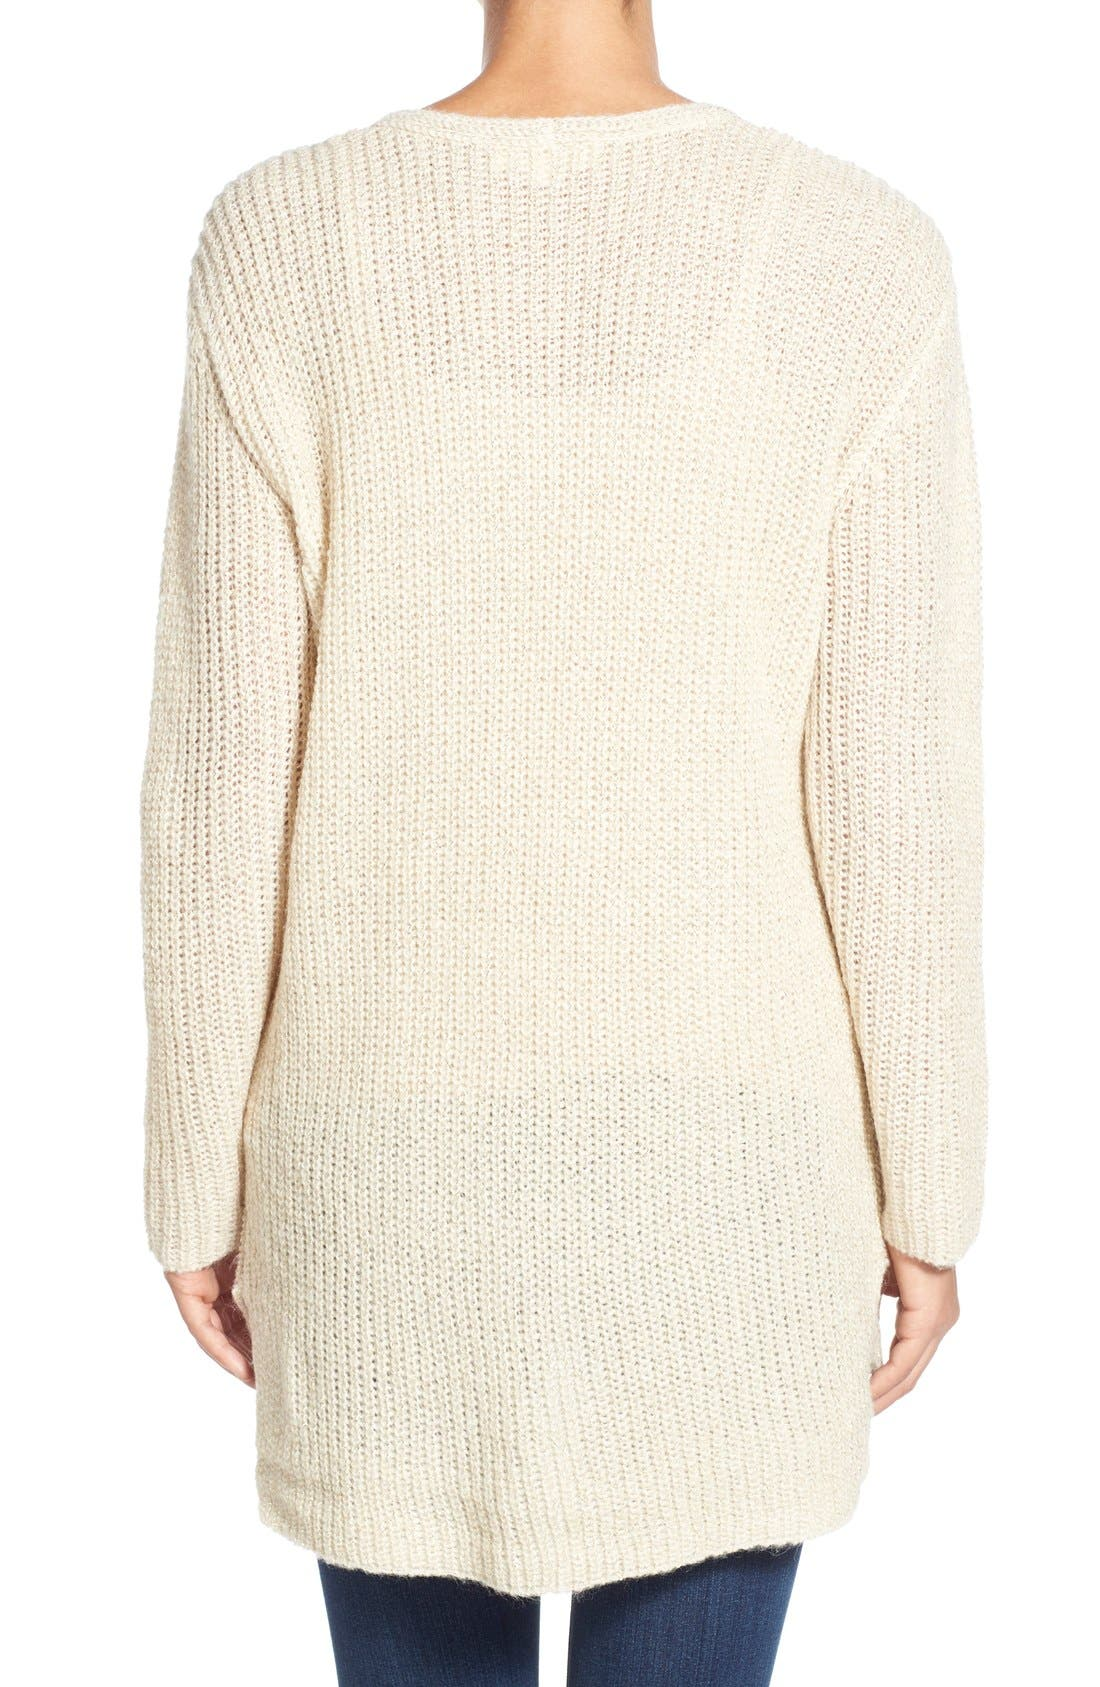 Alternate Image 2  - Two by Vince Camuto Metallic Flecked V-Neck Sweater